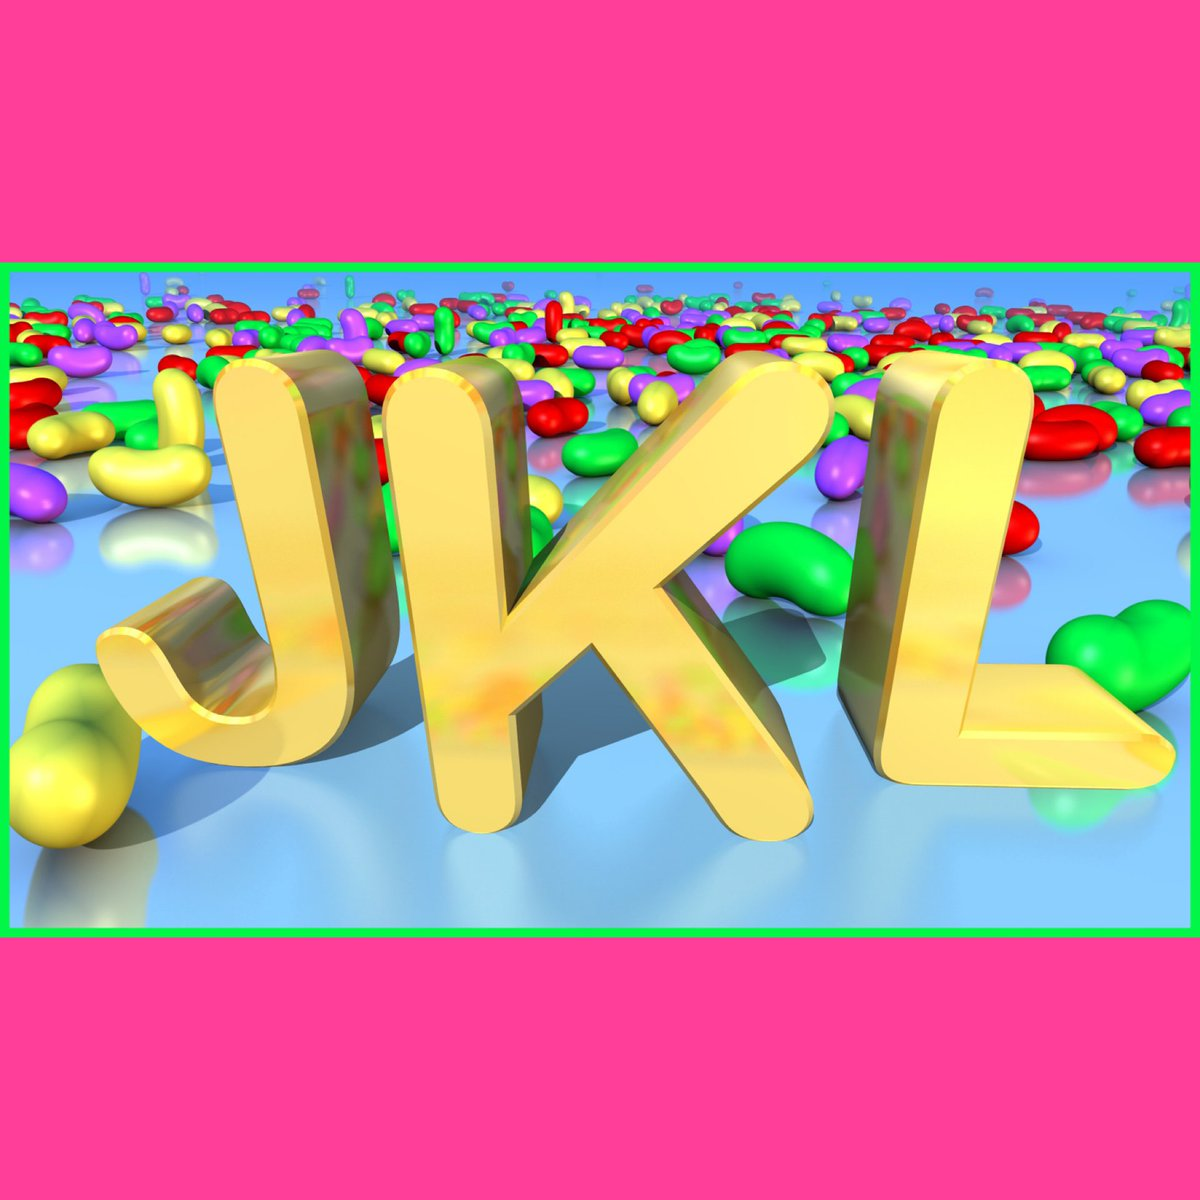 Q: What do jellybeans, keys and lemons have in common?   A: They all star 🌟 in today's video! 🍡🔑 🍋https://youtu.be/4Own3Y1idu8   #kidsvideos #jkl #abcsong #alphabet  #abcdef #kidsyoutubechannel #kidspacestudios #kidspace